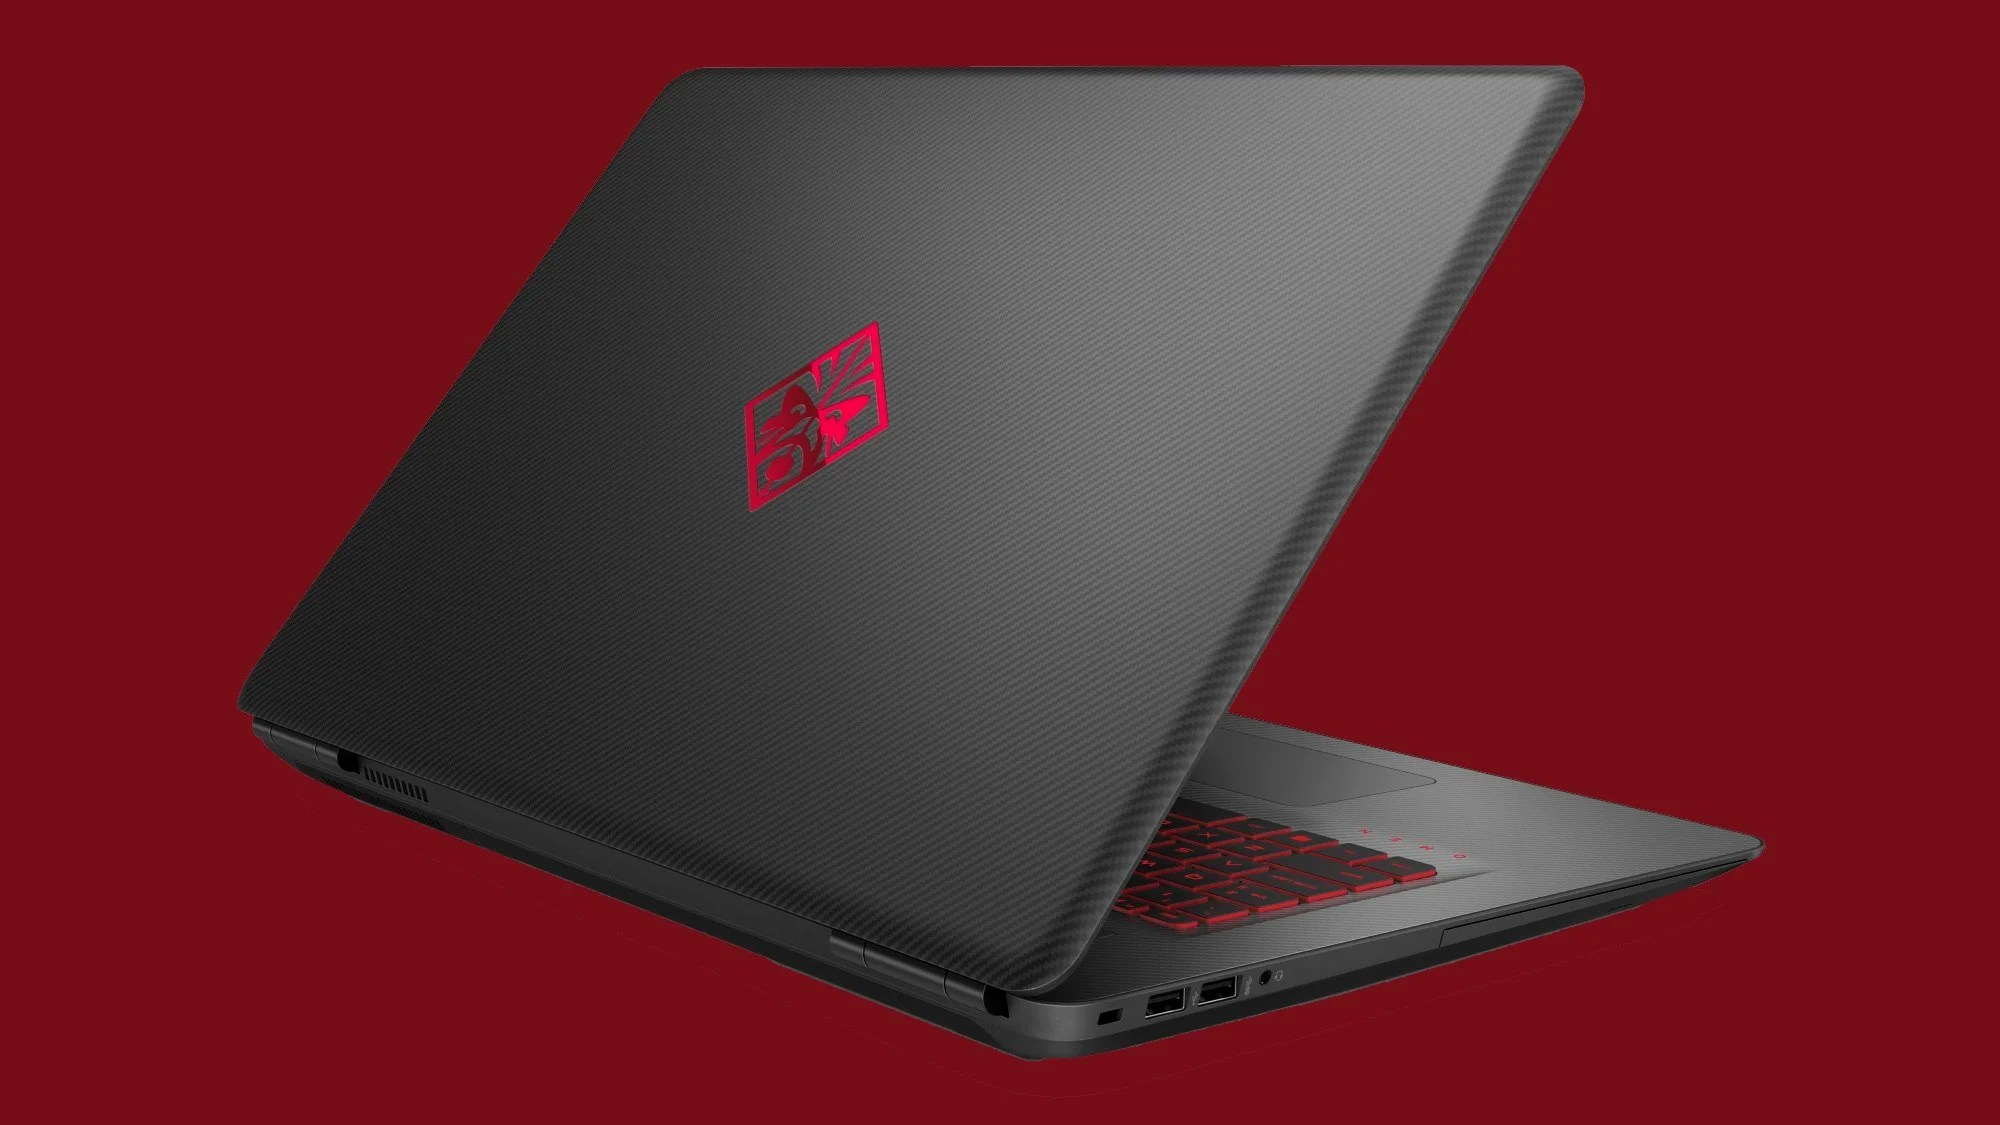 Hp Omen 17 Review Trusted Reviews